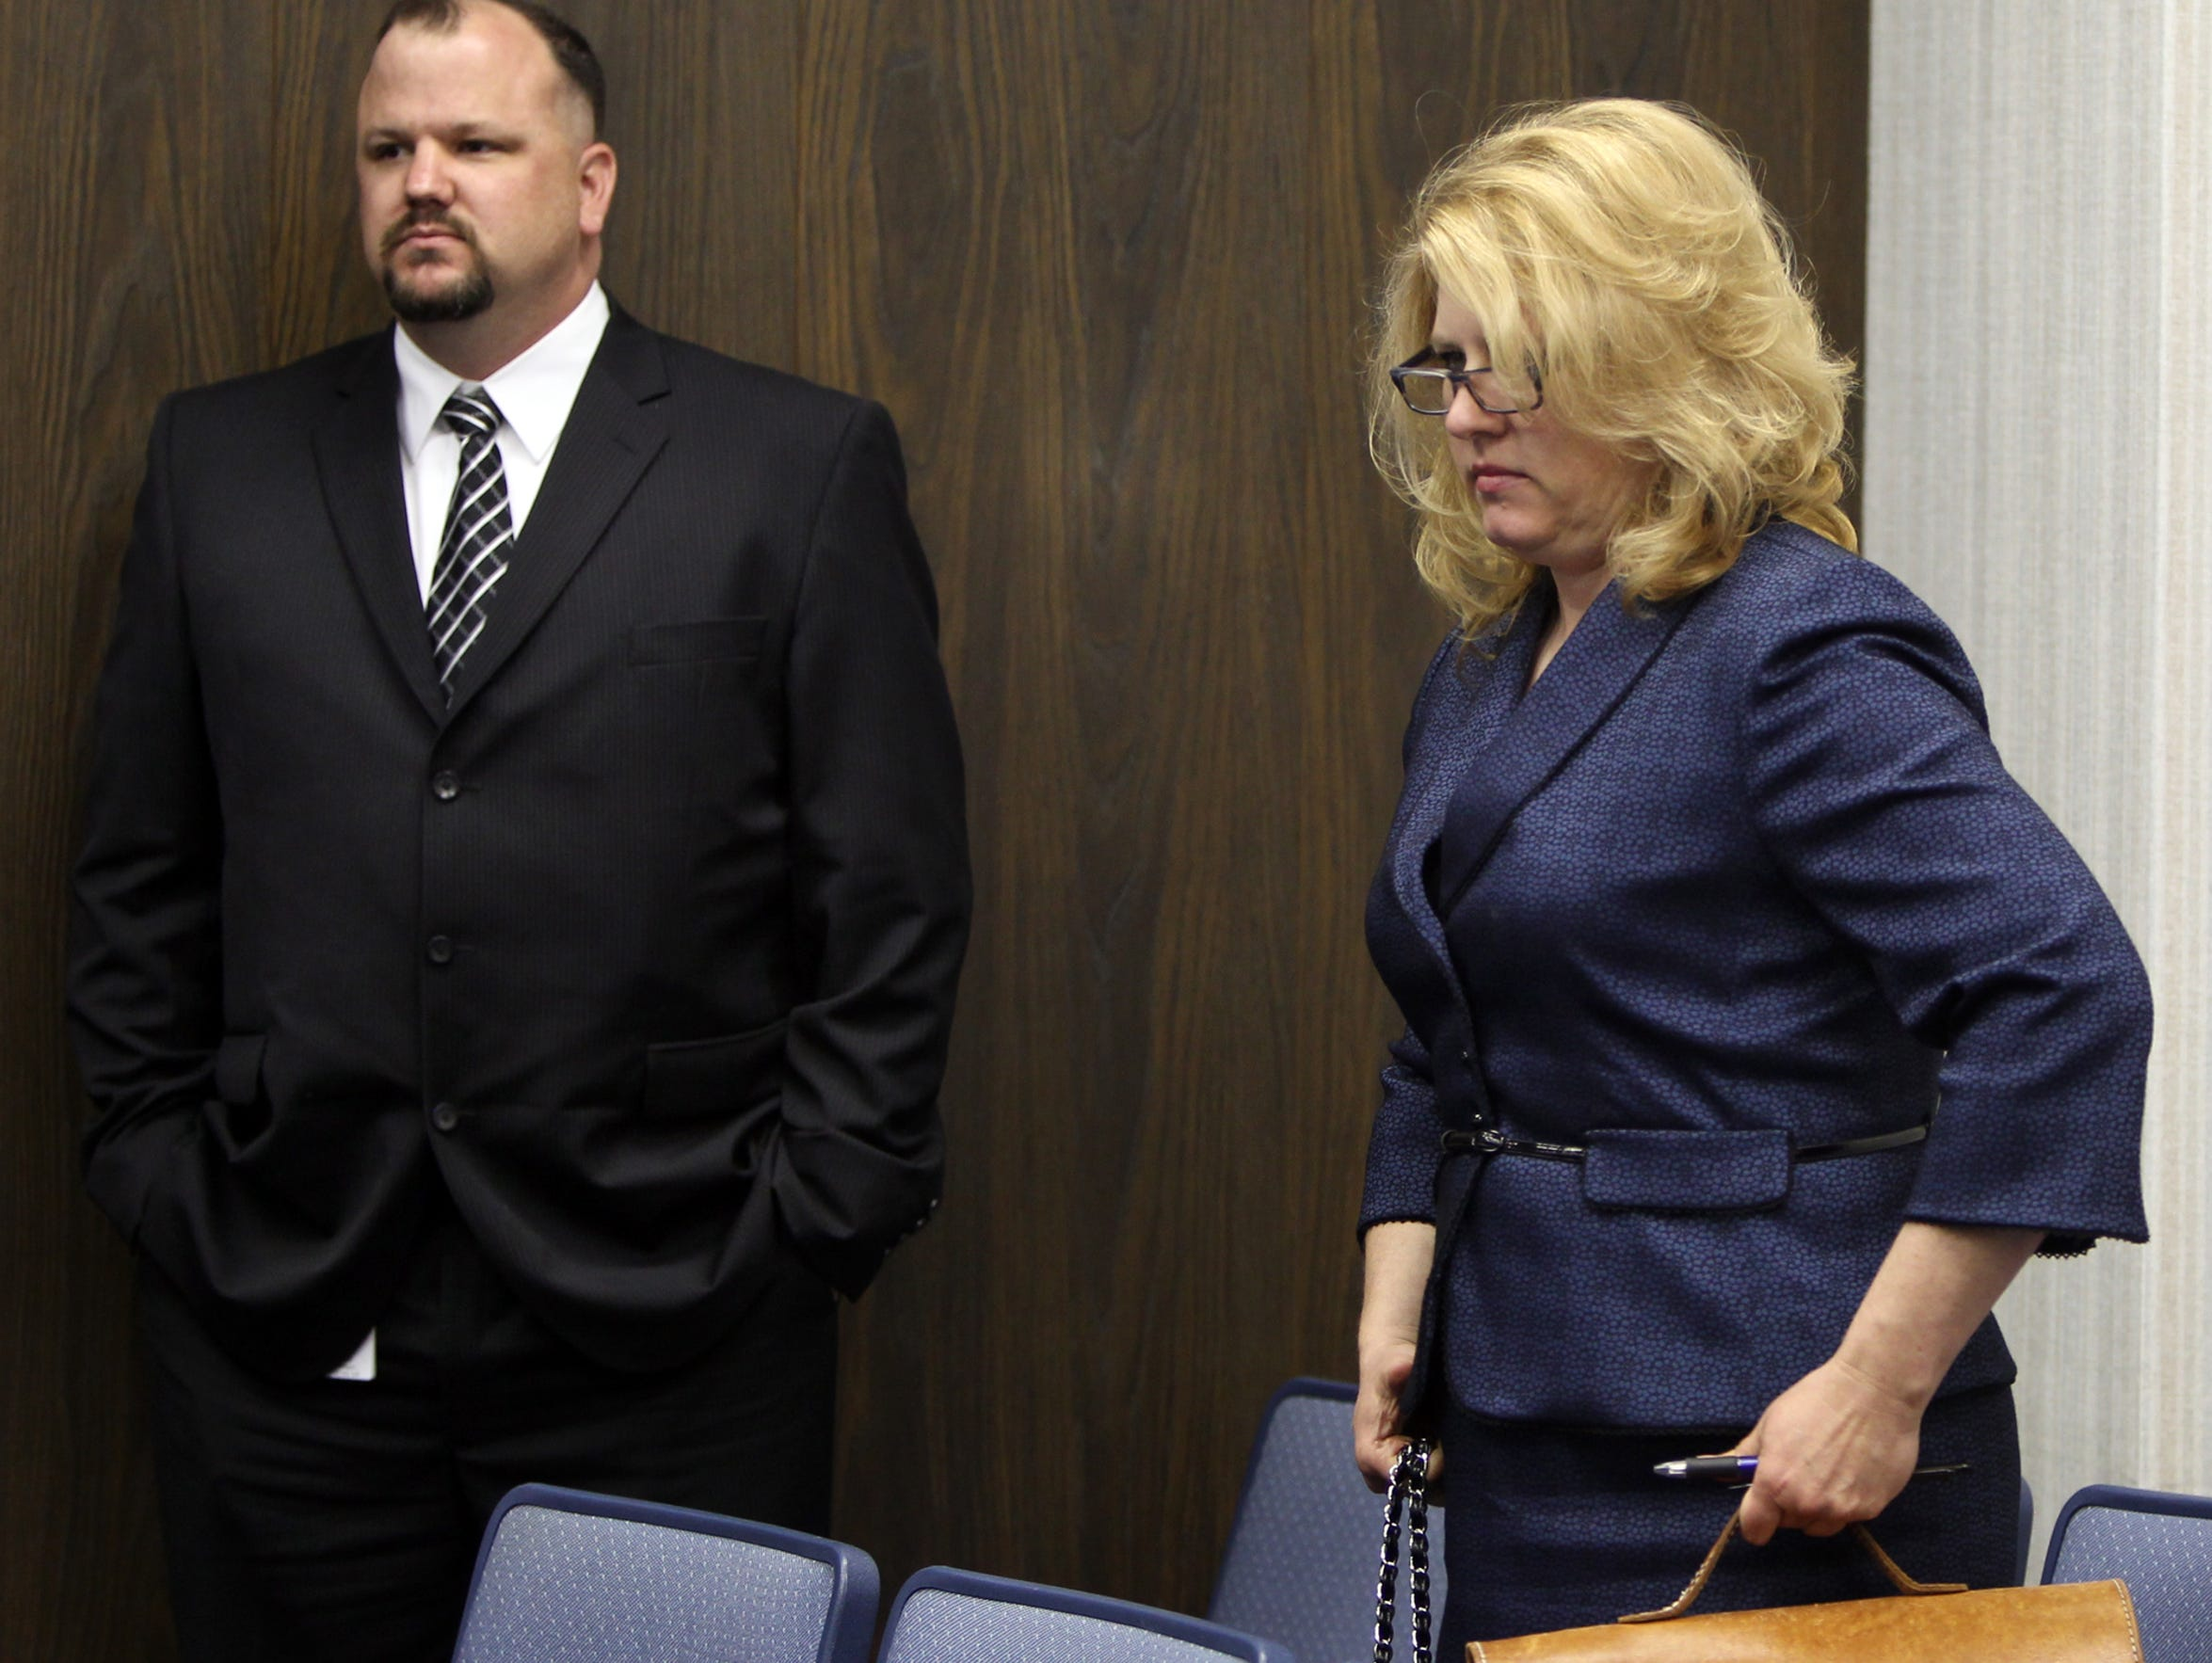 """Kentucky Innocence Project director Linda A. Smith, right, appears in court with James """"Jimmer"""" Dudley, an investigator for the Project. The two fought for DNA testing, which ultimately led to the release of William Virgil in 2015. Enquirer file"""